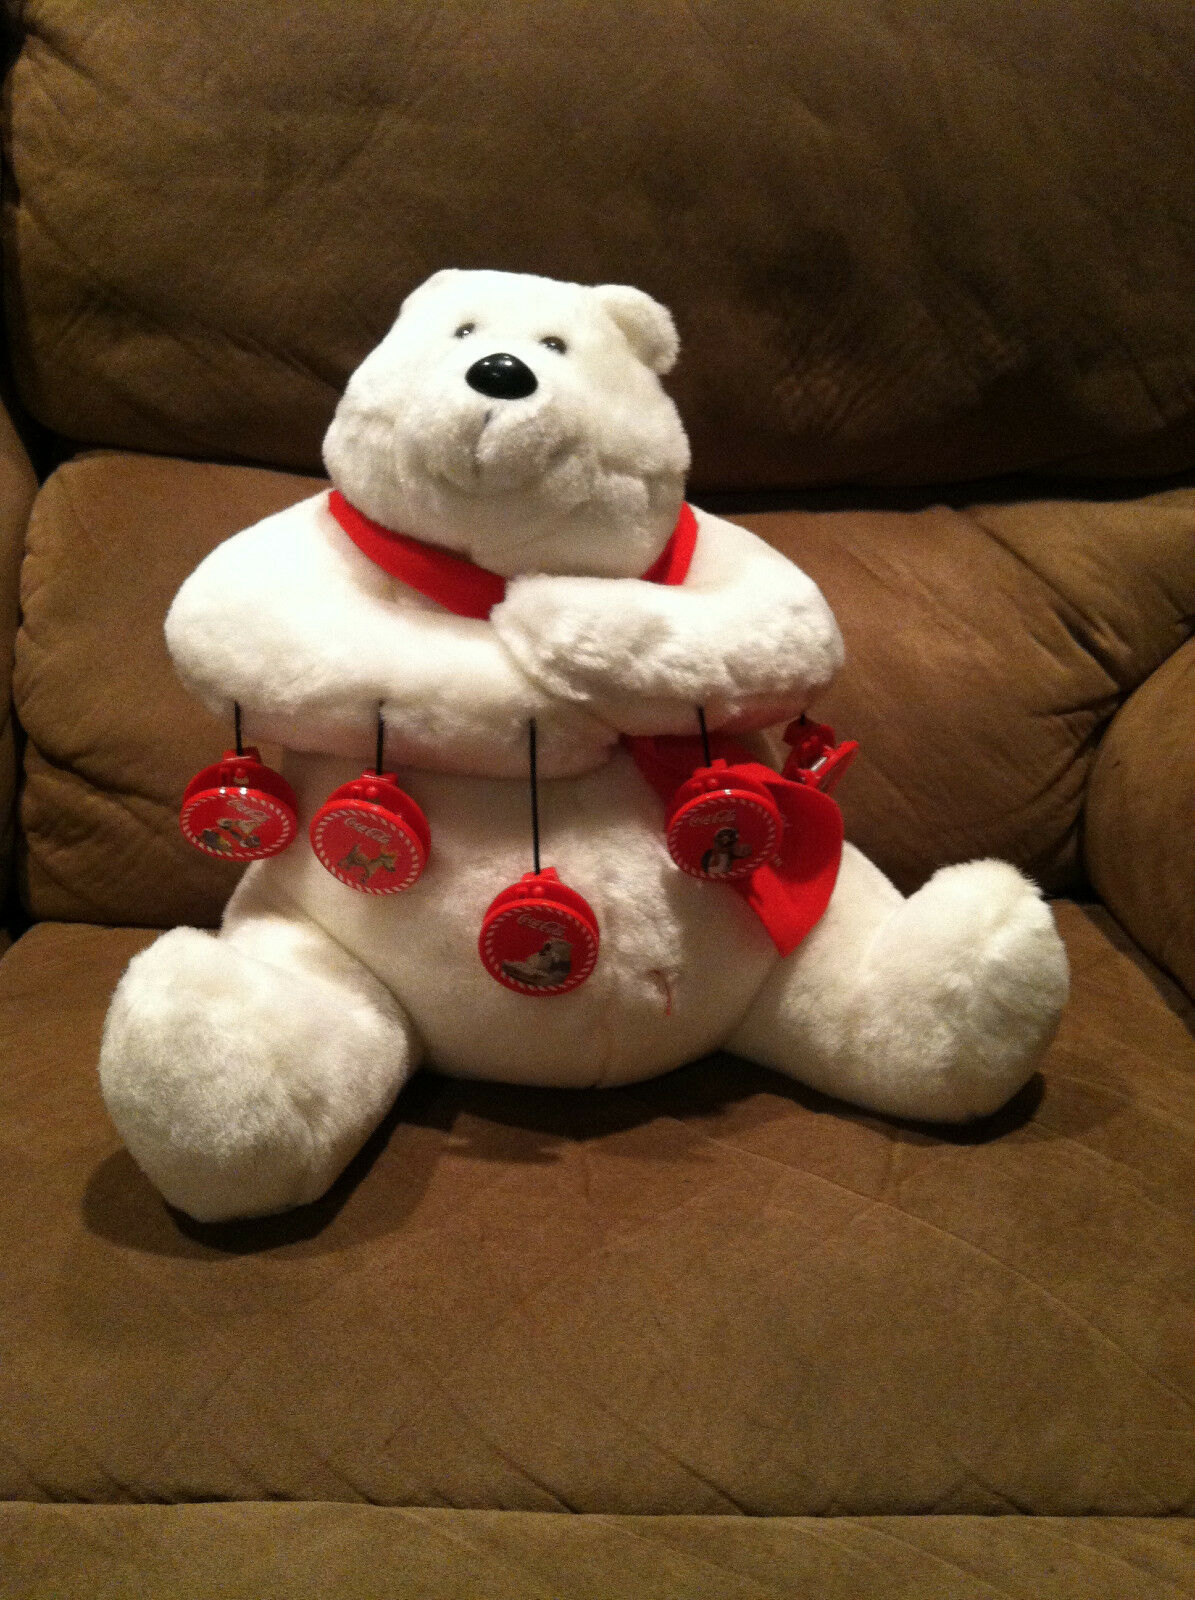 COCA-COLA MR POLAR BEAR W/ ROT SCARF And 5 Magnet CLIPS PLUSH STUFFED ANIMAL 12